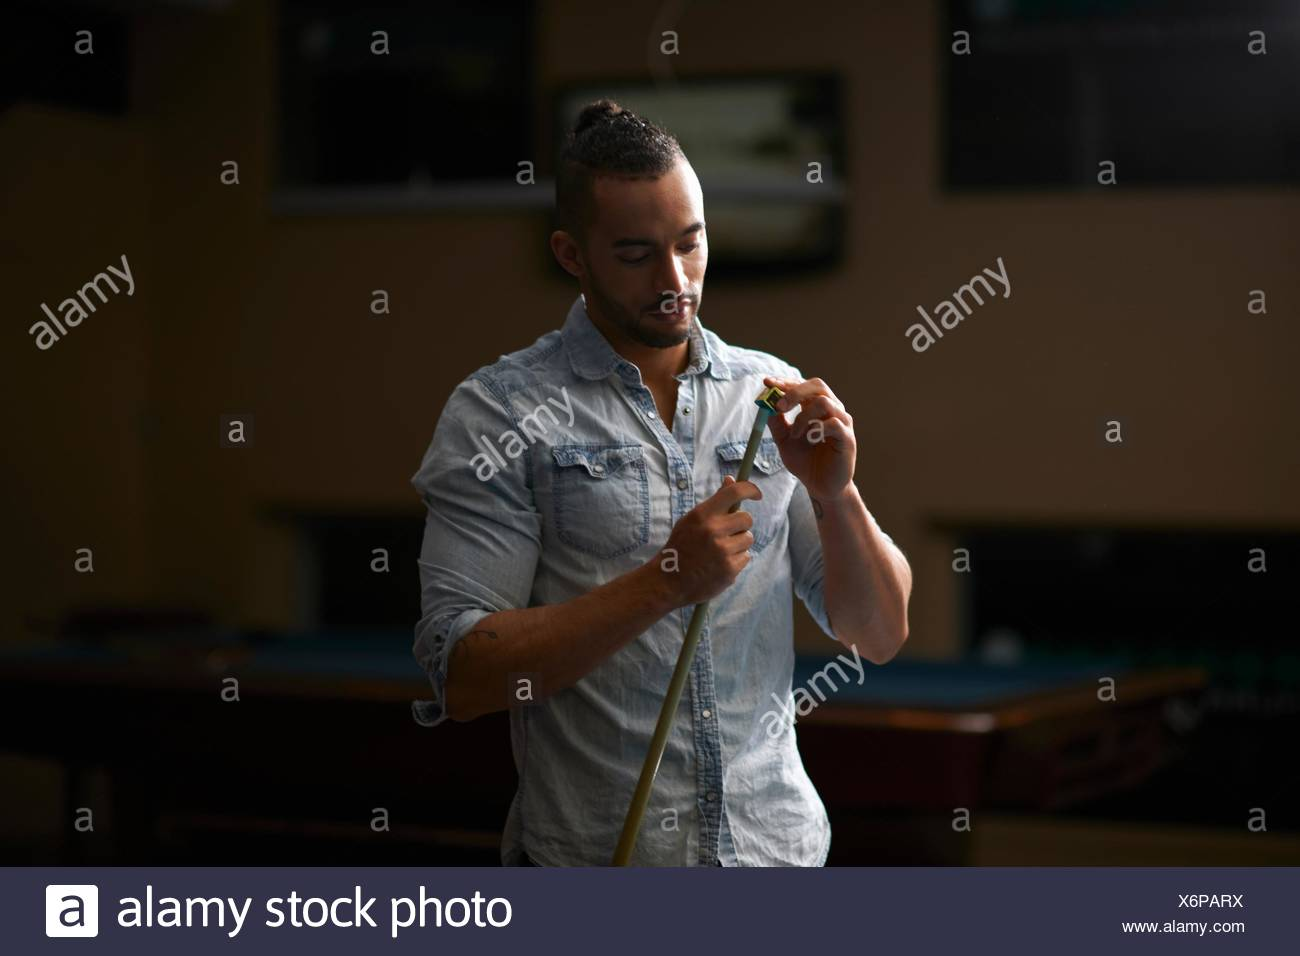 Man chalk rubbing pool cue - Stock Image